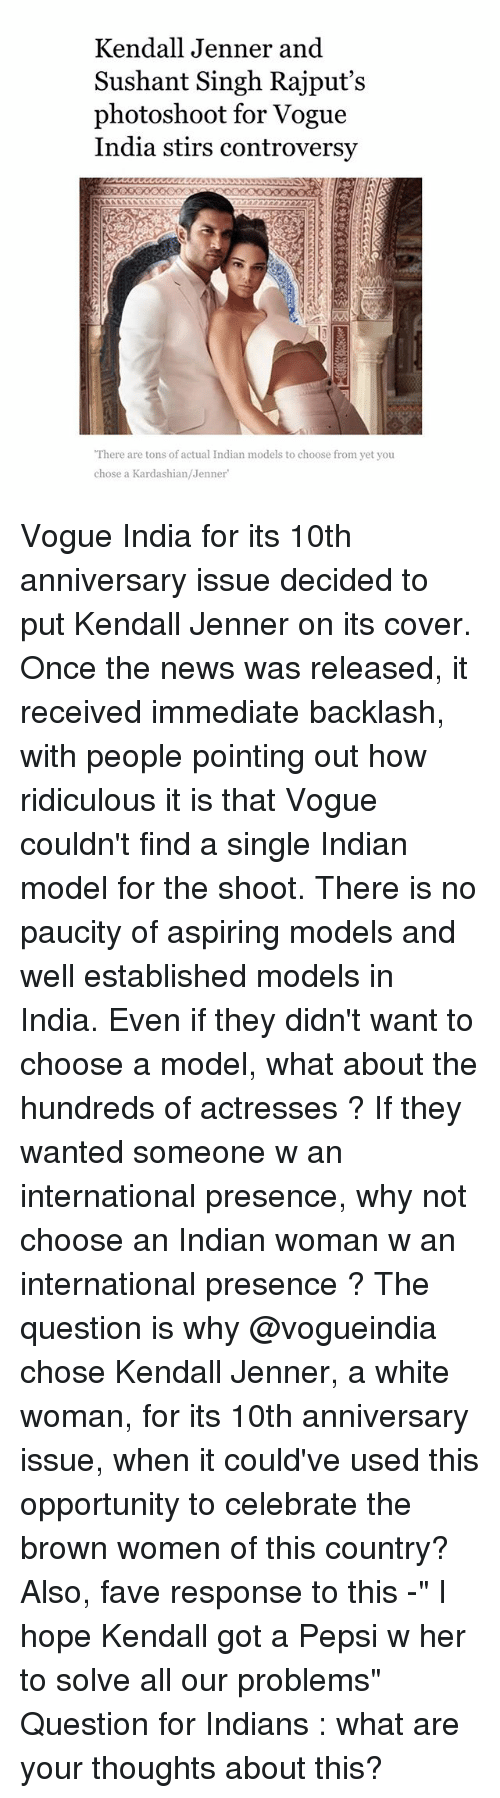 "Kendall Jenner, Memes, and News: Kendall Jenner and  Sushant Singh Rajput's  photoshoot for Vogue  India stirs controversy  ""There are tons of actual Indian models to choose from yet you  chose a Kardashian/Jenner Vogue India for its 10th anniversary issue decided to put Kendall Jenner on its cover. Once the news was released, it received immediate backlash, with people pointing out how ridiculous it is that Vogue couldn't find a single Indian model for the shoot. There is no paucity of aspiring models and well established models in India. Even if they didn't want to choose a model, what about the hundreds of actresses ? If they wanted someone w an international presence, why not choose an Indian woman w an international presence ? The question is why @vogueindia chose Kendall Jenner, a white woman, for its 10th anniversary issue, when it could've used this opportunity to celebrate the brown women of this country? Also, fave response to this -"" I hope Kendall got a Pepsi w her to solve all our problems"" Question for Indians : what are your thoughts about this?"